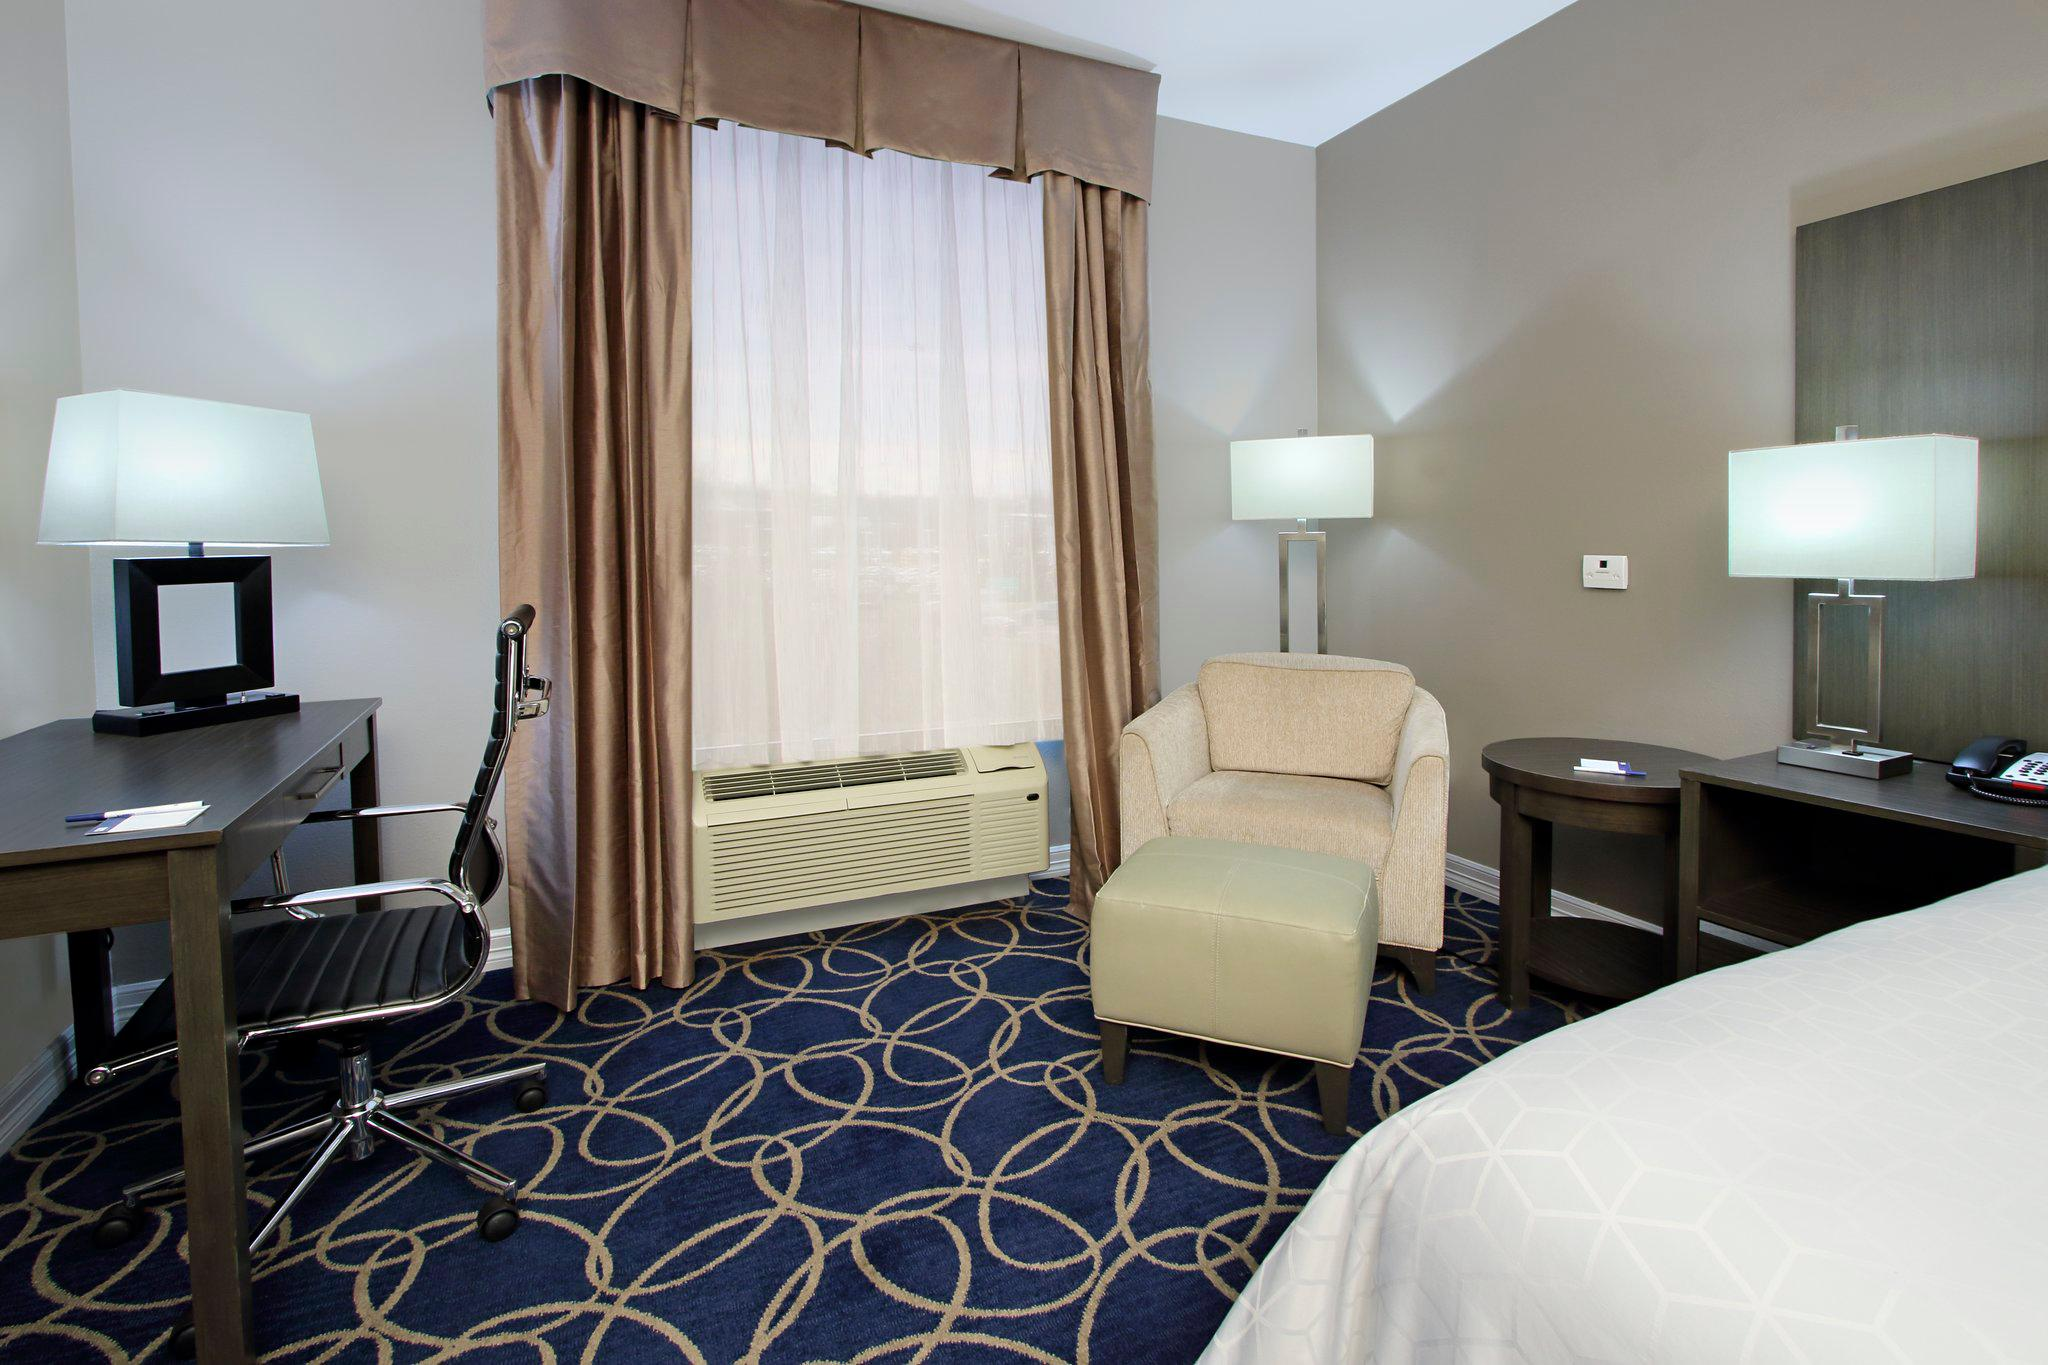 Holiday Inn Express & Suites Houston North - IAH Area, an IHG Hotel